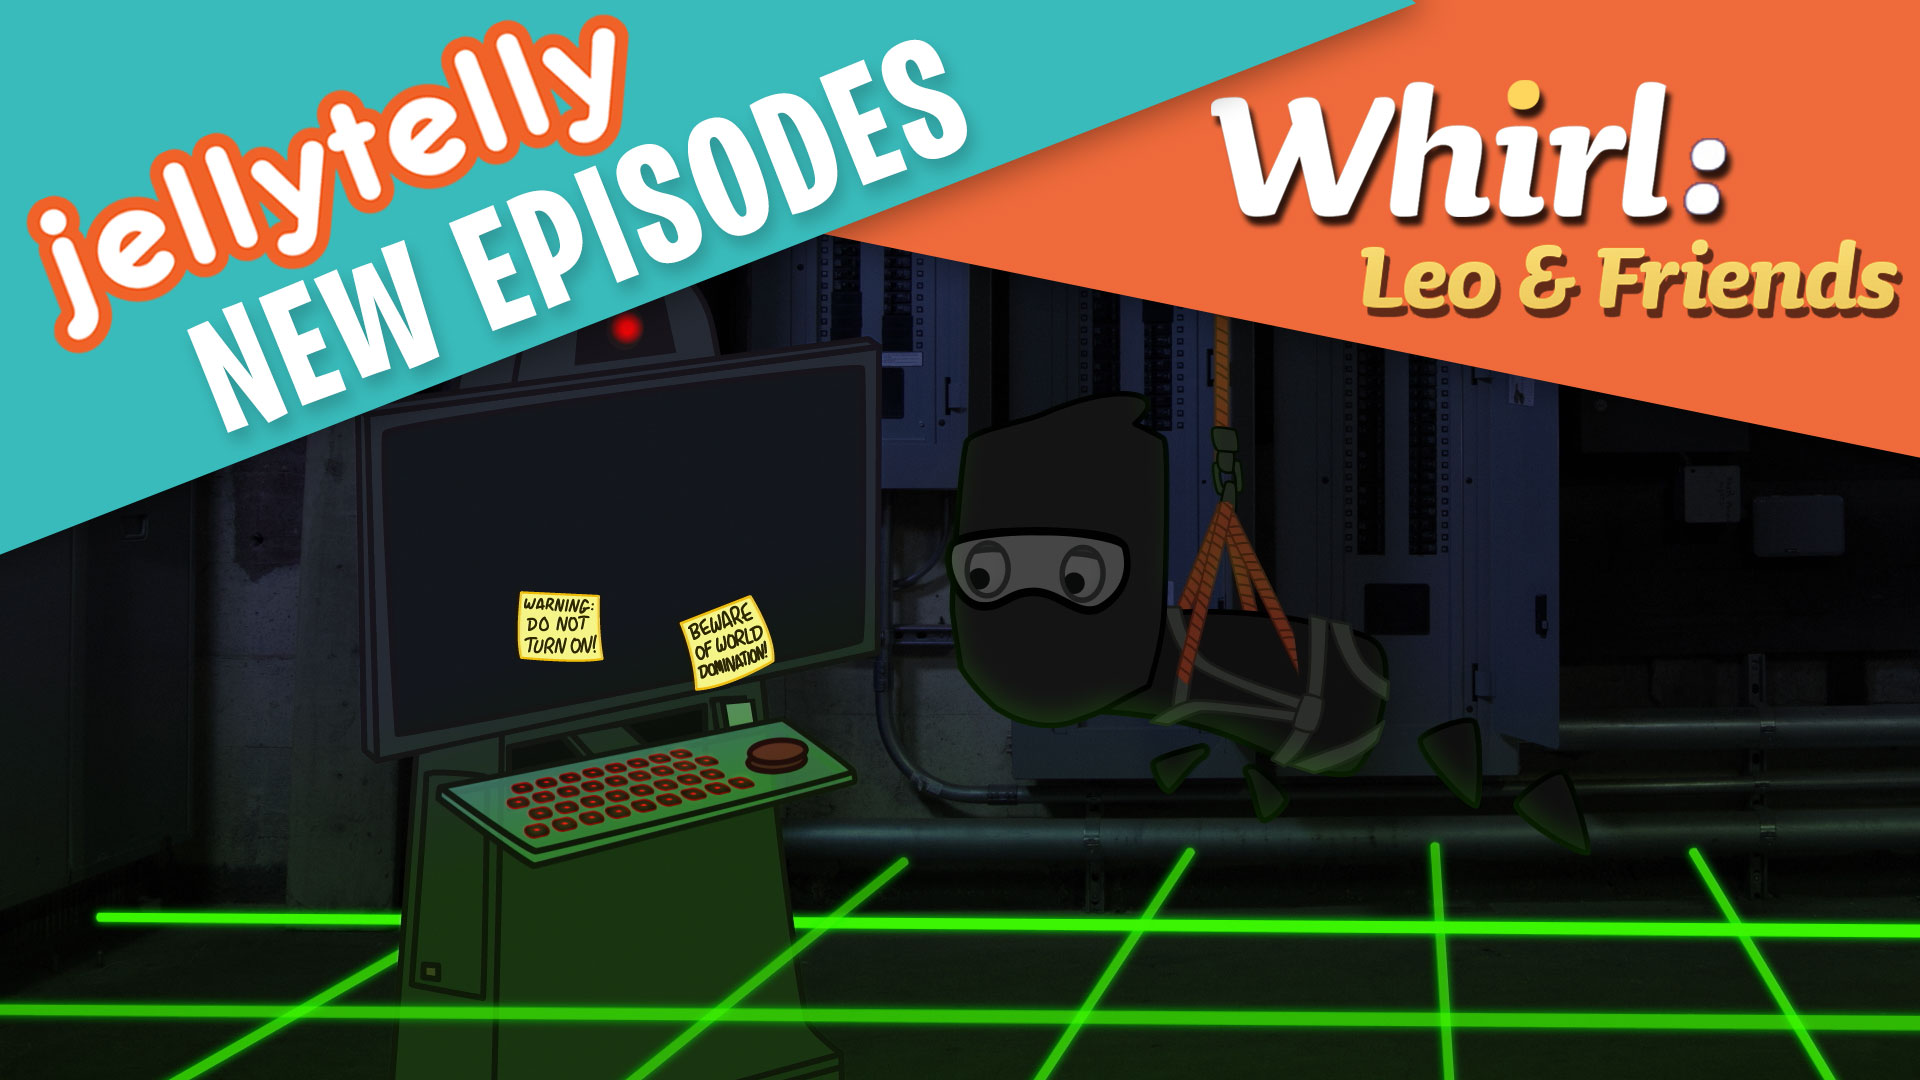 Whirl leo v4 ep06 featured preview image